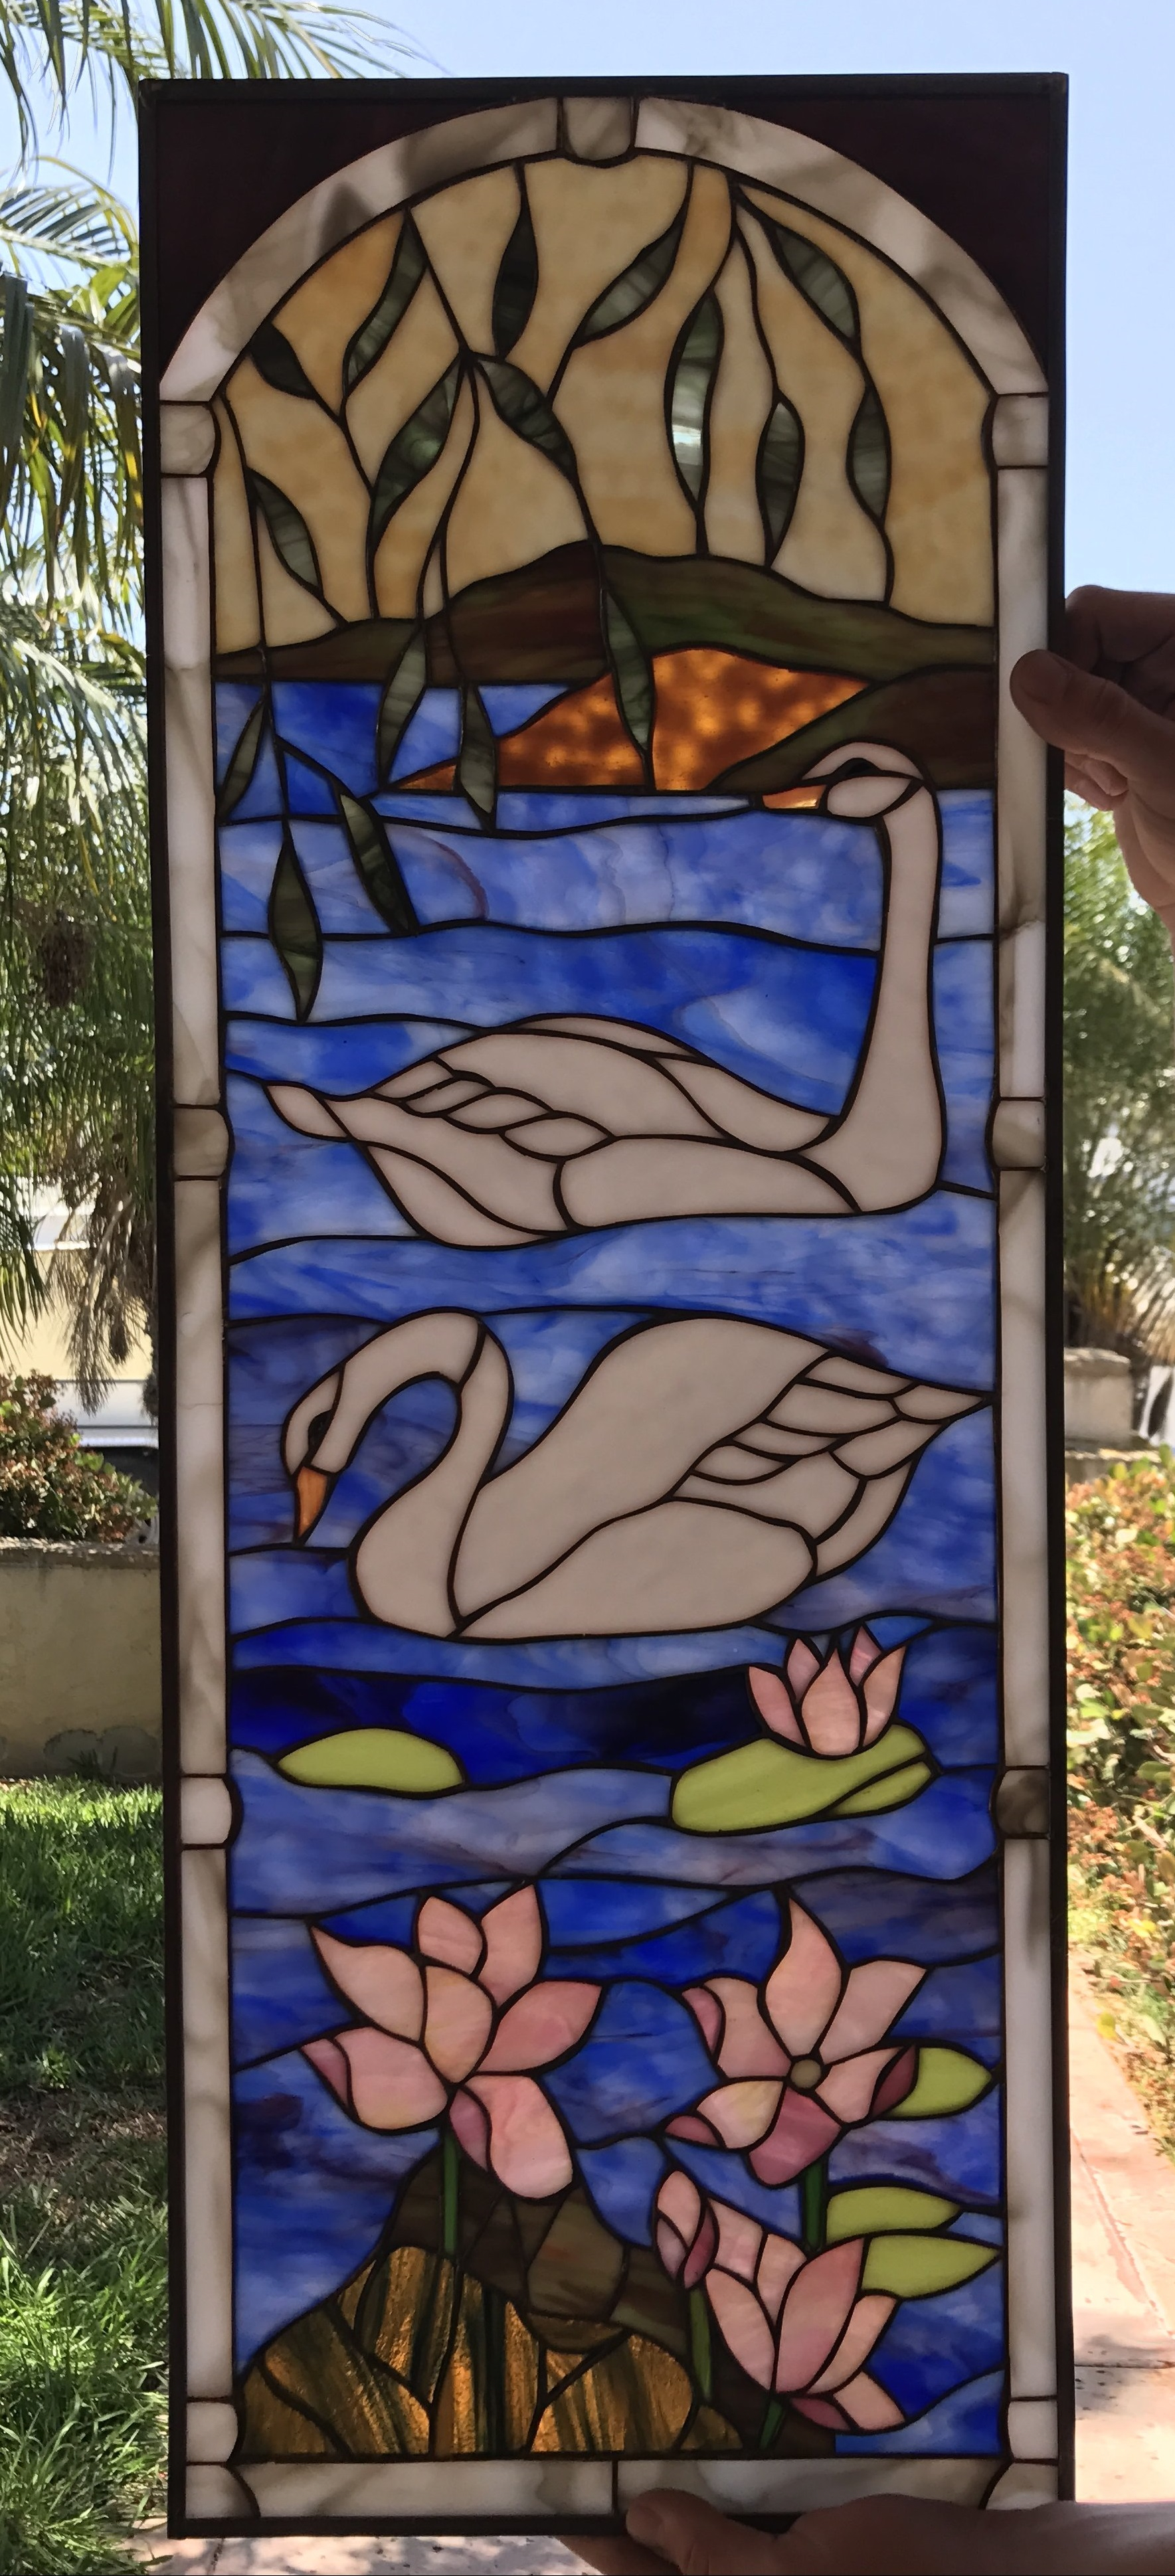 The Quot Swan Lake Quot Stained Glass Window Panel Or Cabinet